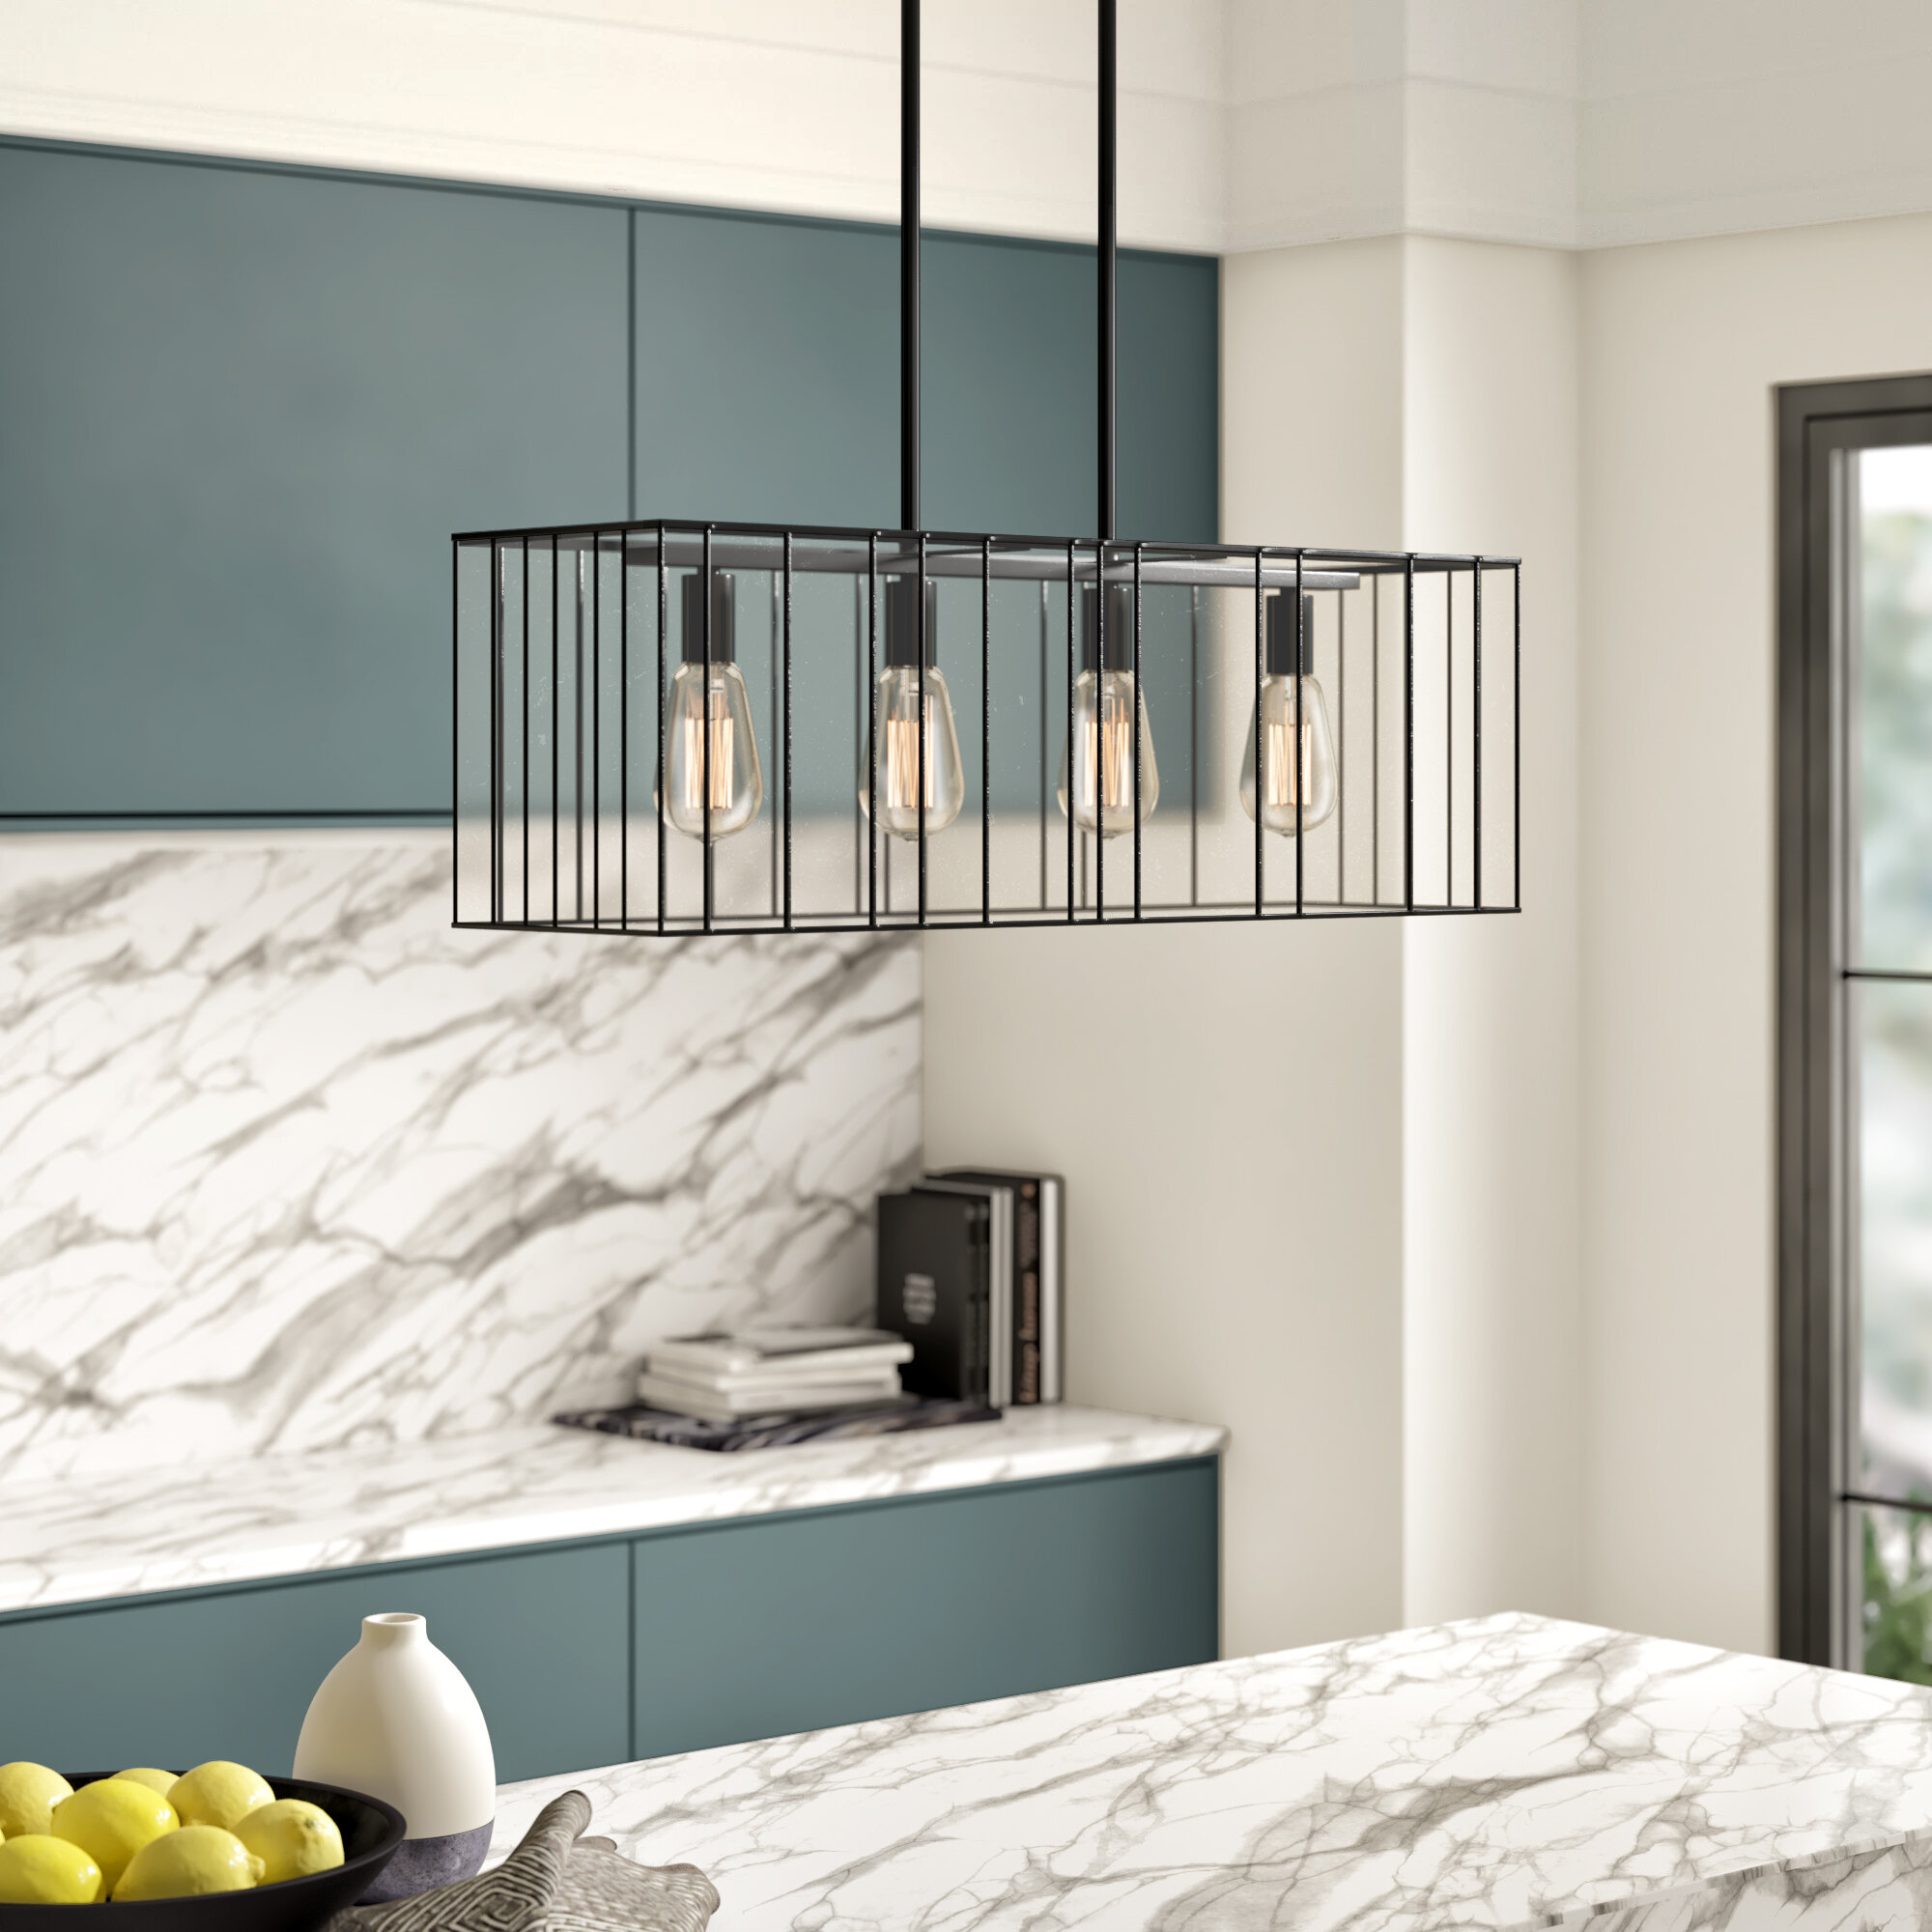 Byford 4-Light Kitchen Island Linear Pendant for Odie 8-Light Kitchen Island Square / Rectangle Pendants (Image 4 of 30)